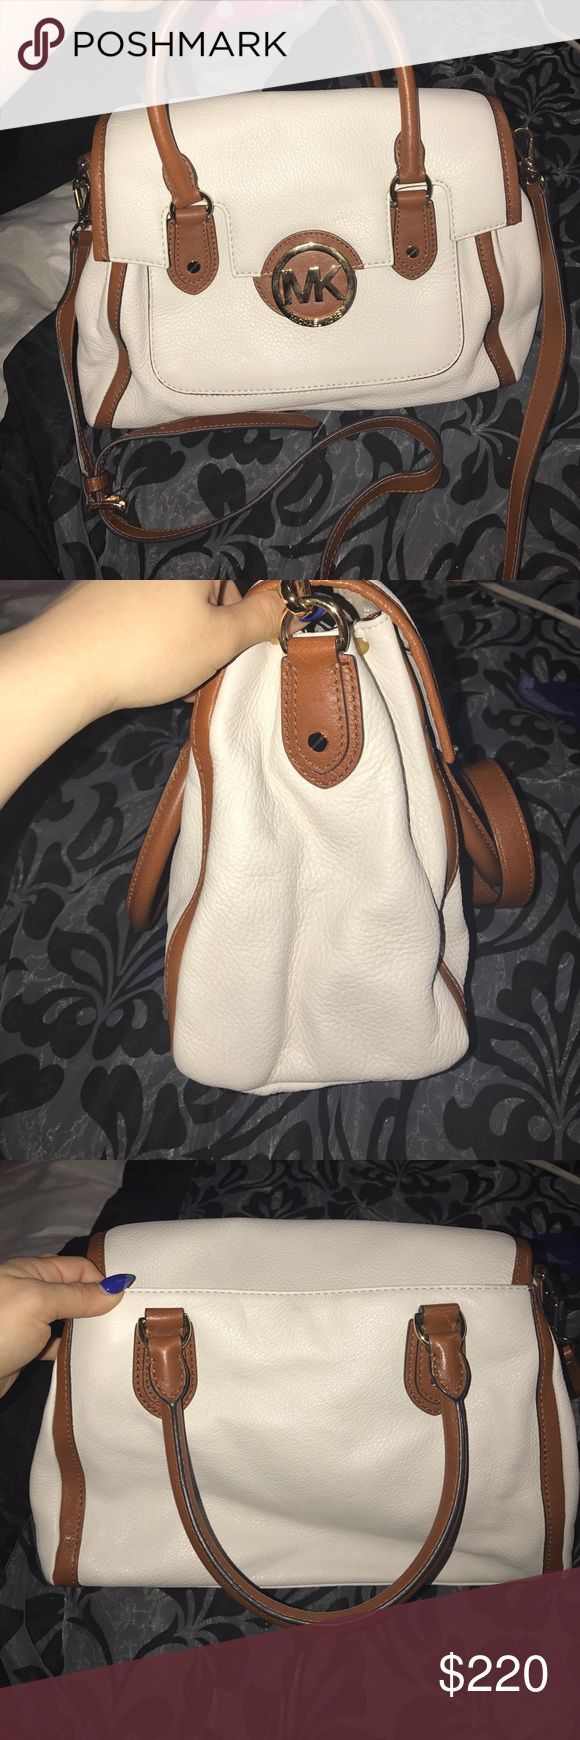 Leather Michael Kors purse Vanilla and tan leather Michael kors satchel. Only used it once it's in perfect condition , tags are still in bag. Michael Kors Bags Satchels